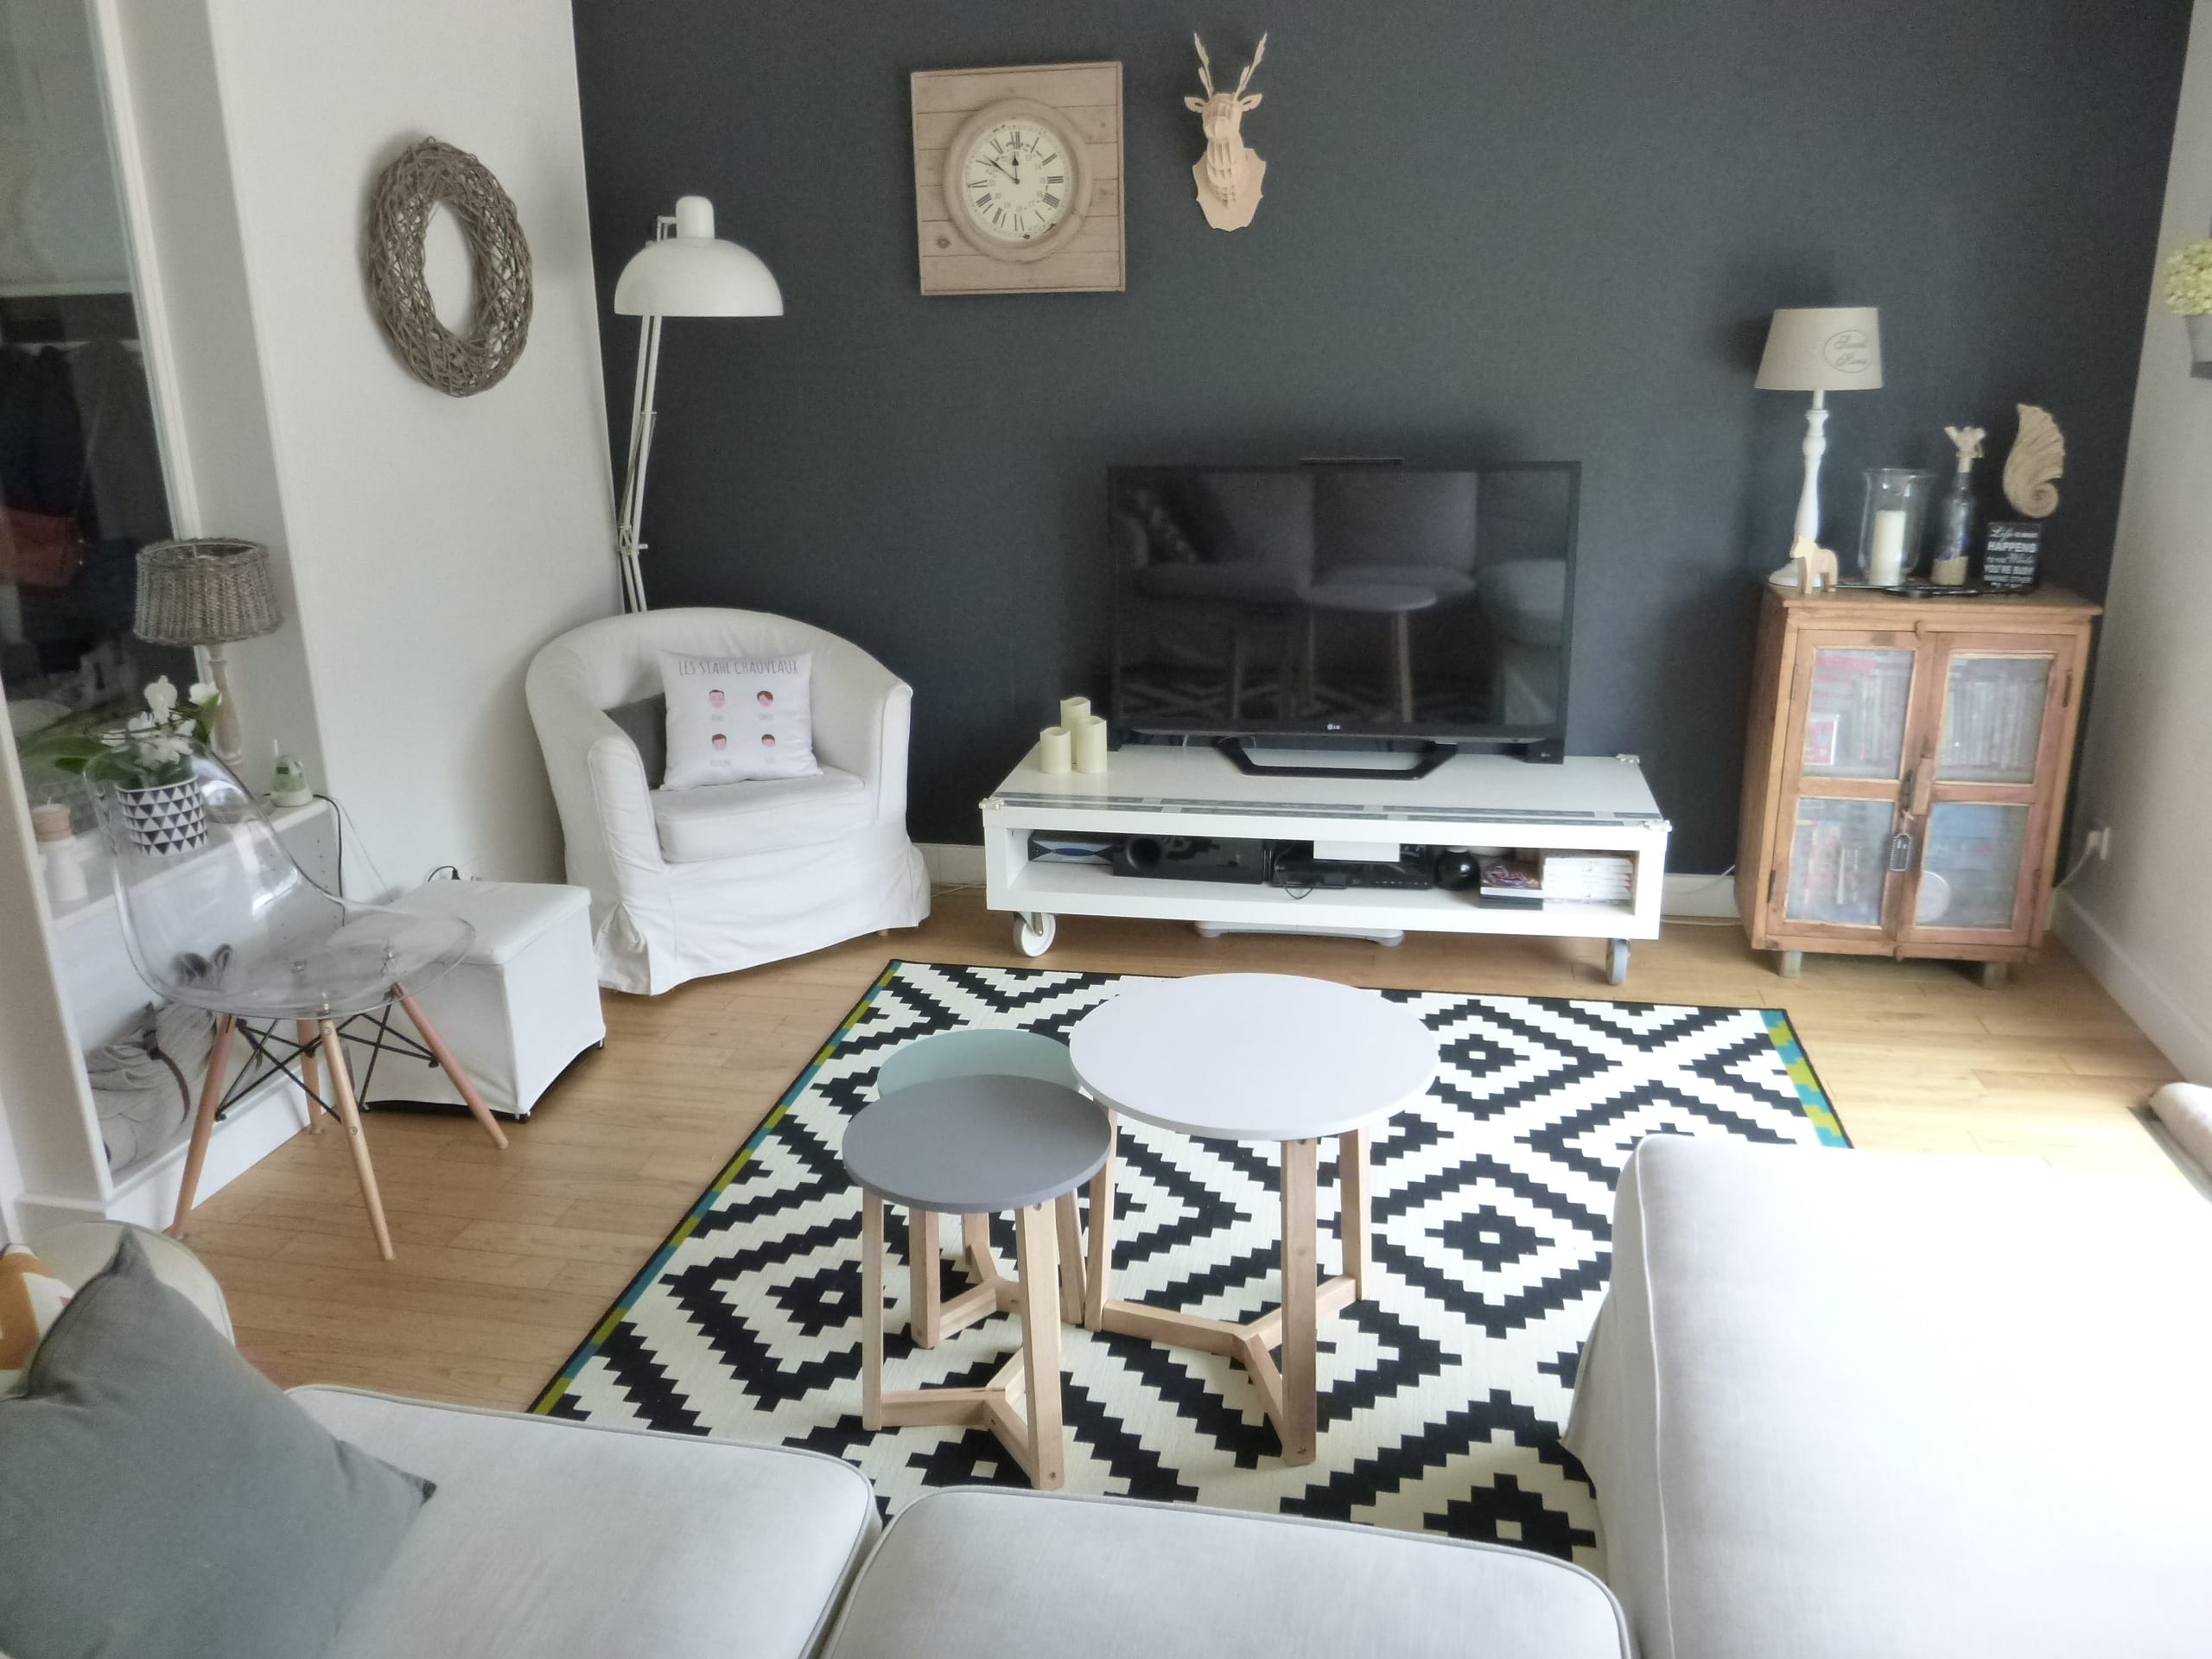 Apr s un salon scandinave - Idee deco salon scandinave ...